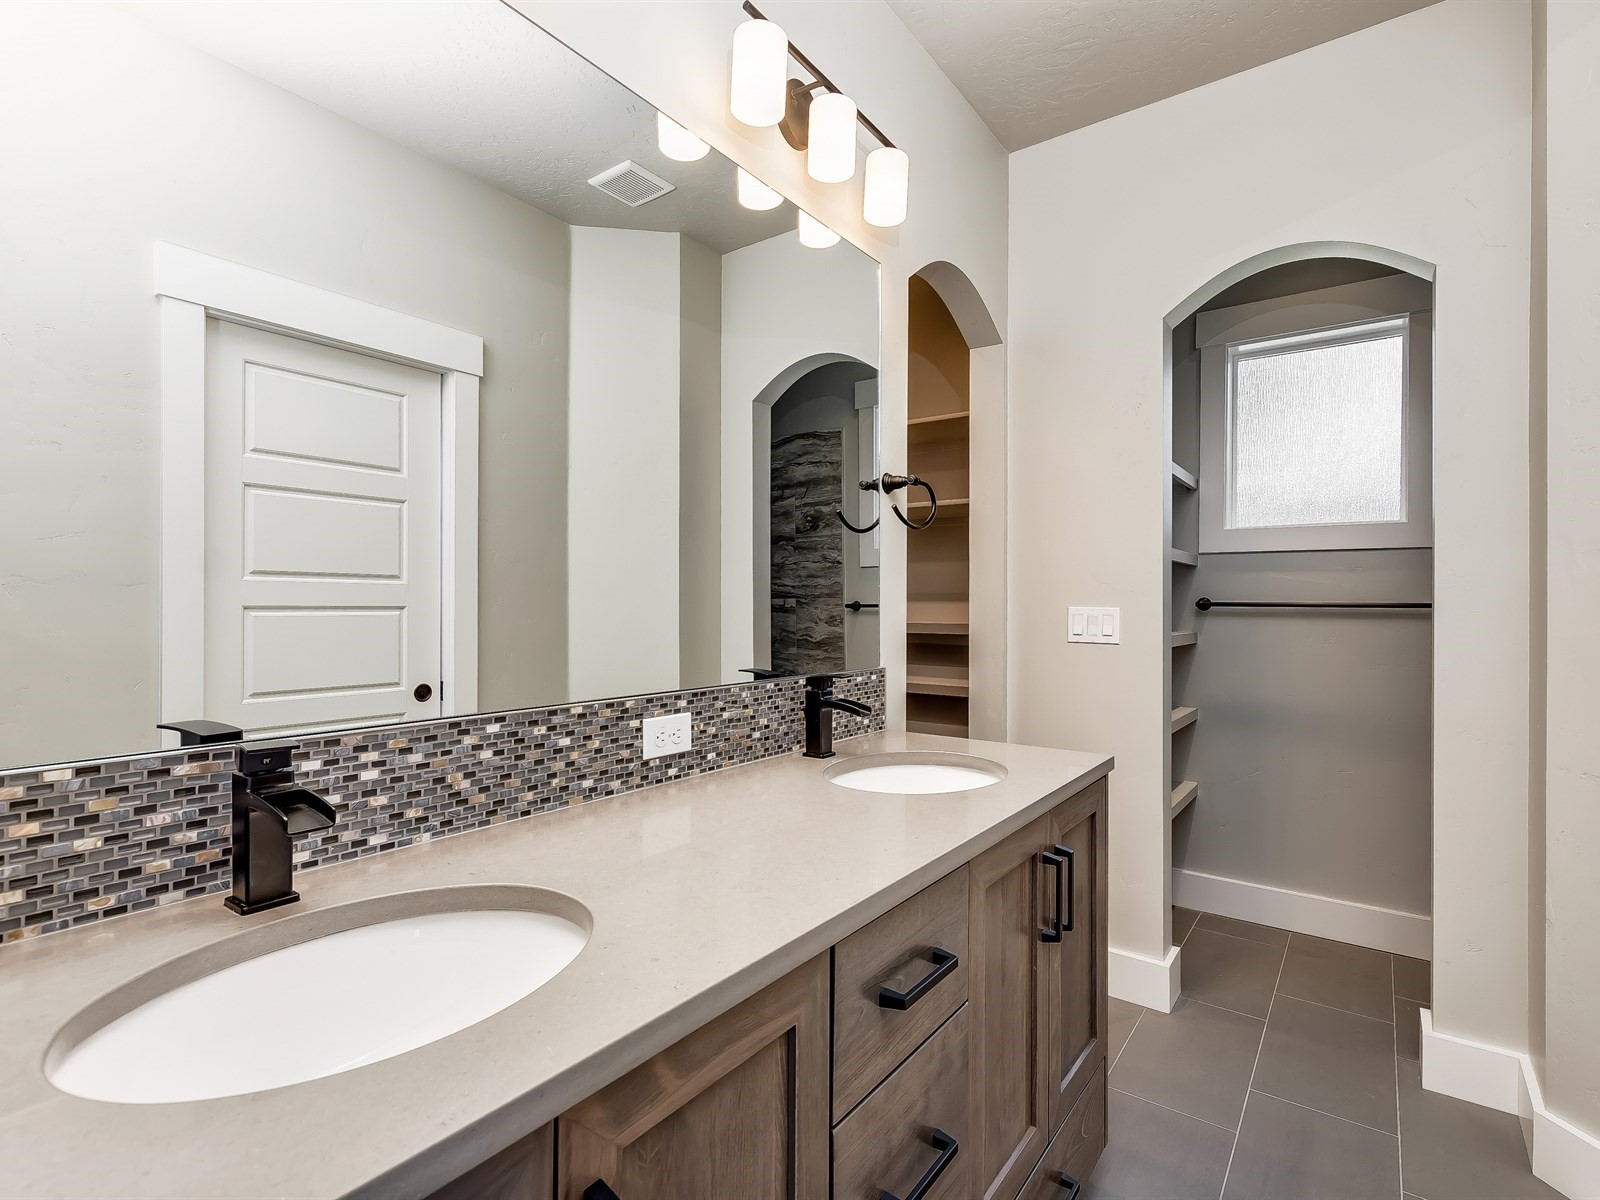 029_Master Bathroom .jpg